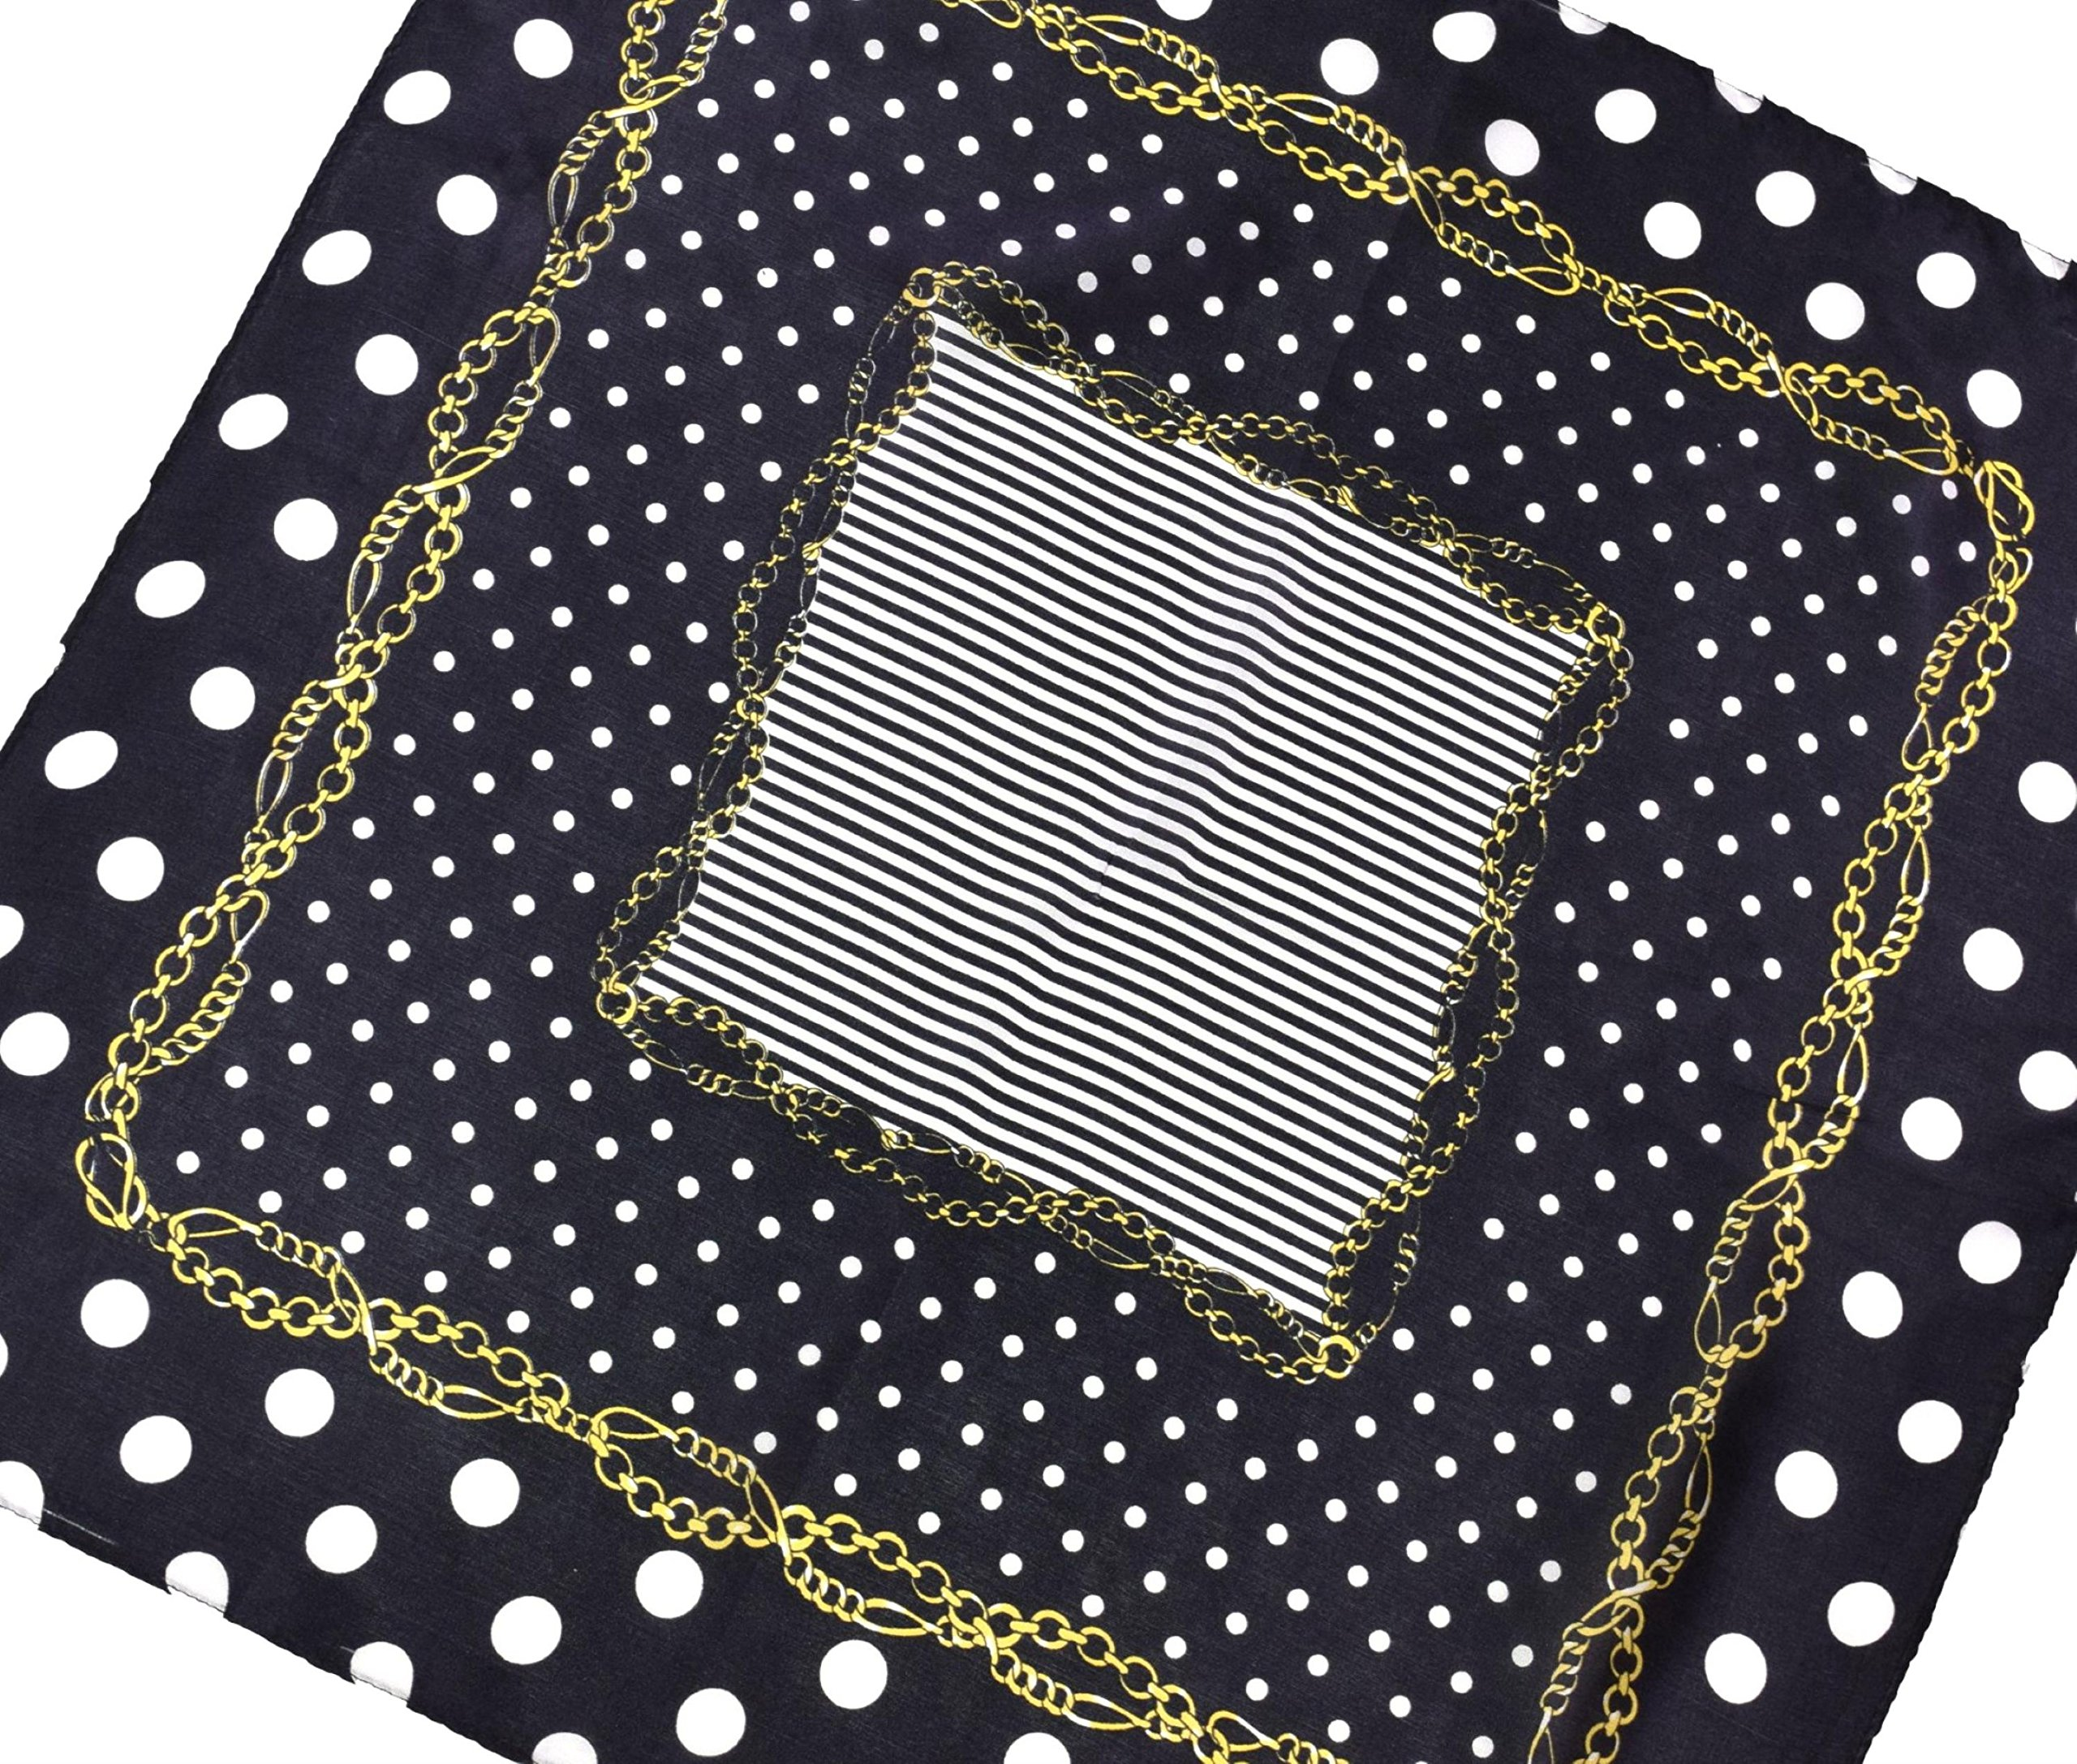 Black White Gold Spotted Printed Fine Small Square Silk Scarf by Bees Knees Fashion (Image #3)